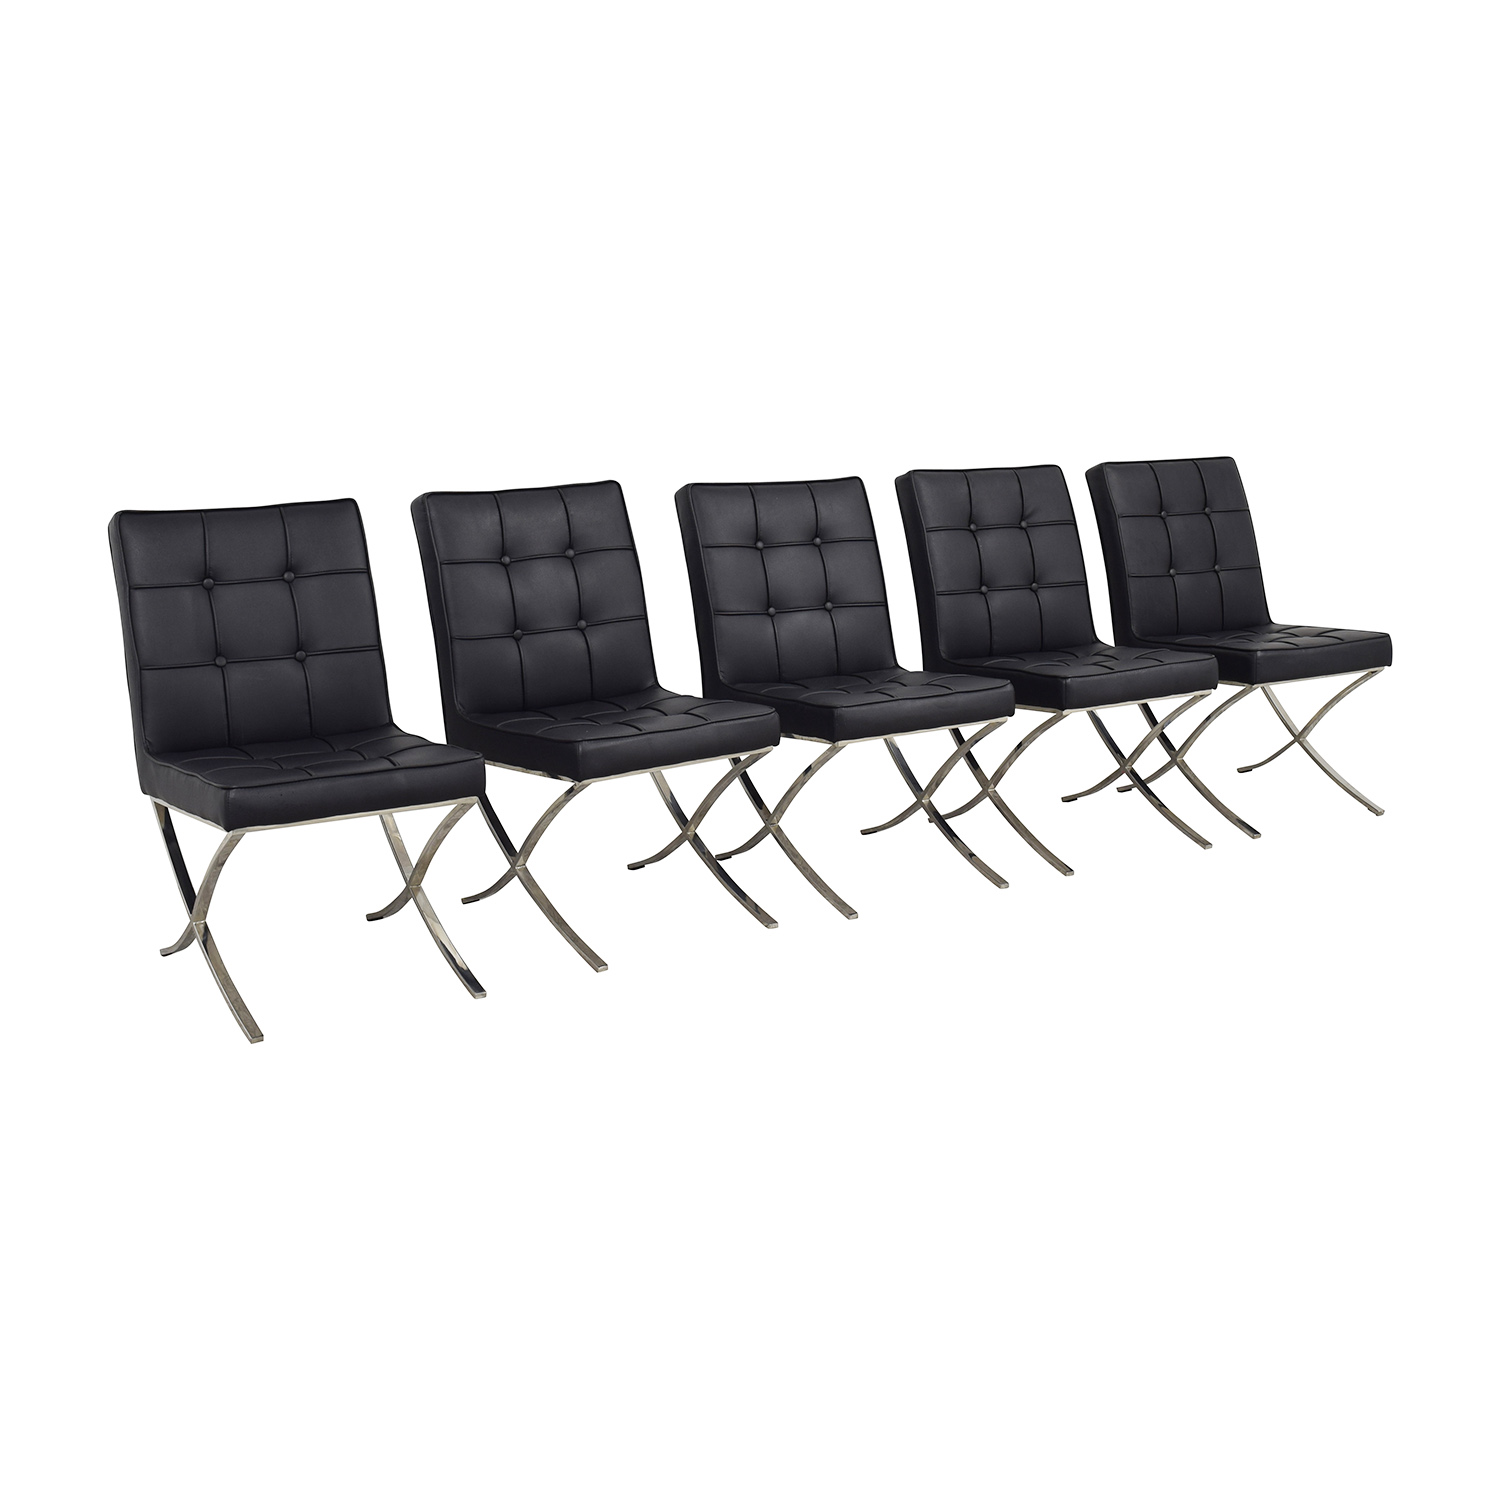 West Elm West Elm Black Tufted Leather Chairs second hand